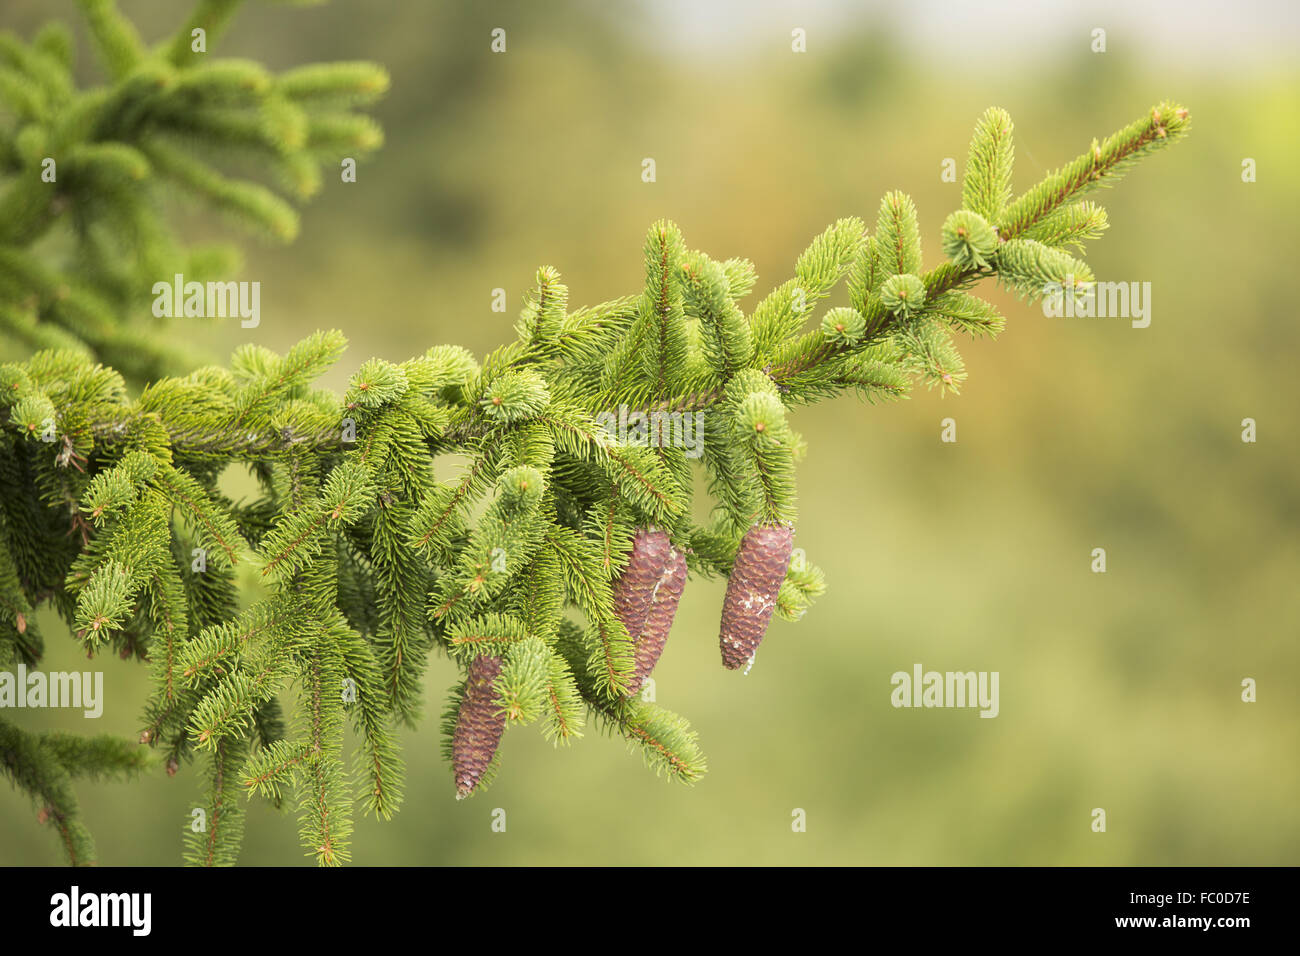 spruce, Picea abies - Stock Image